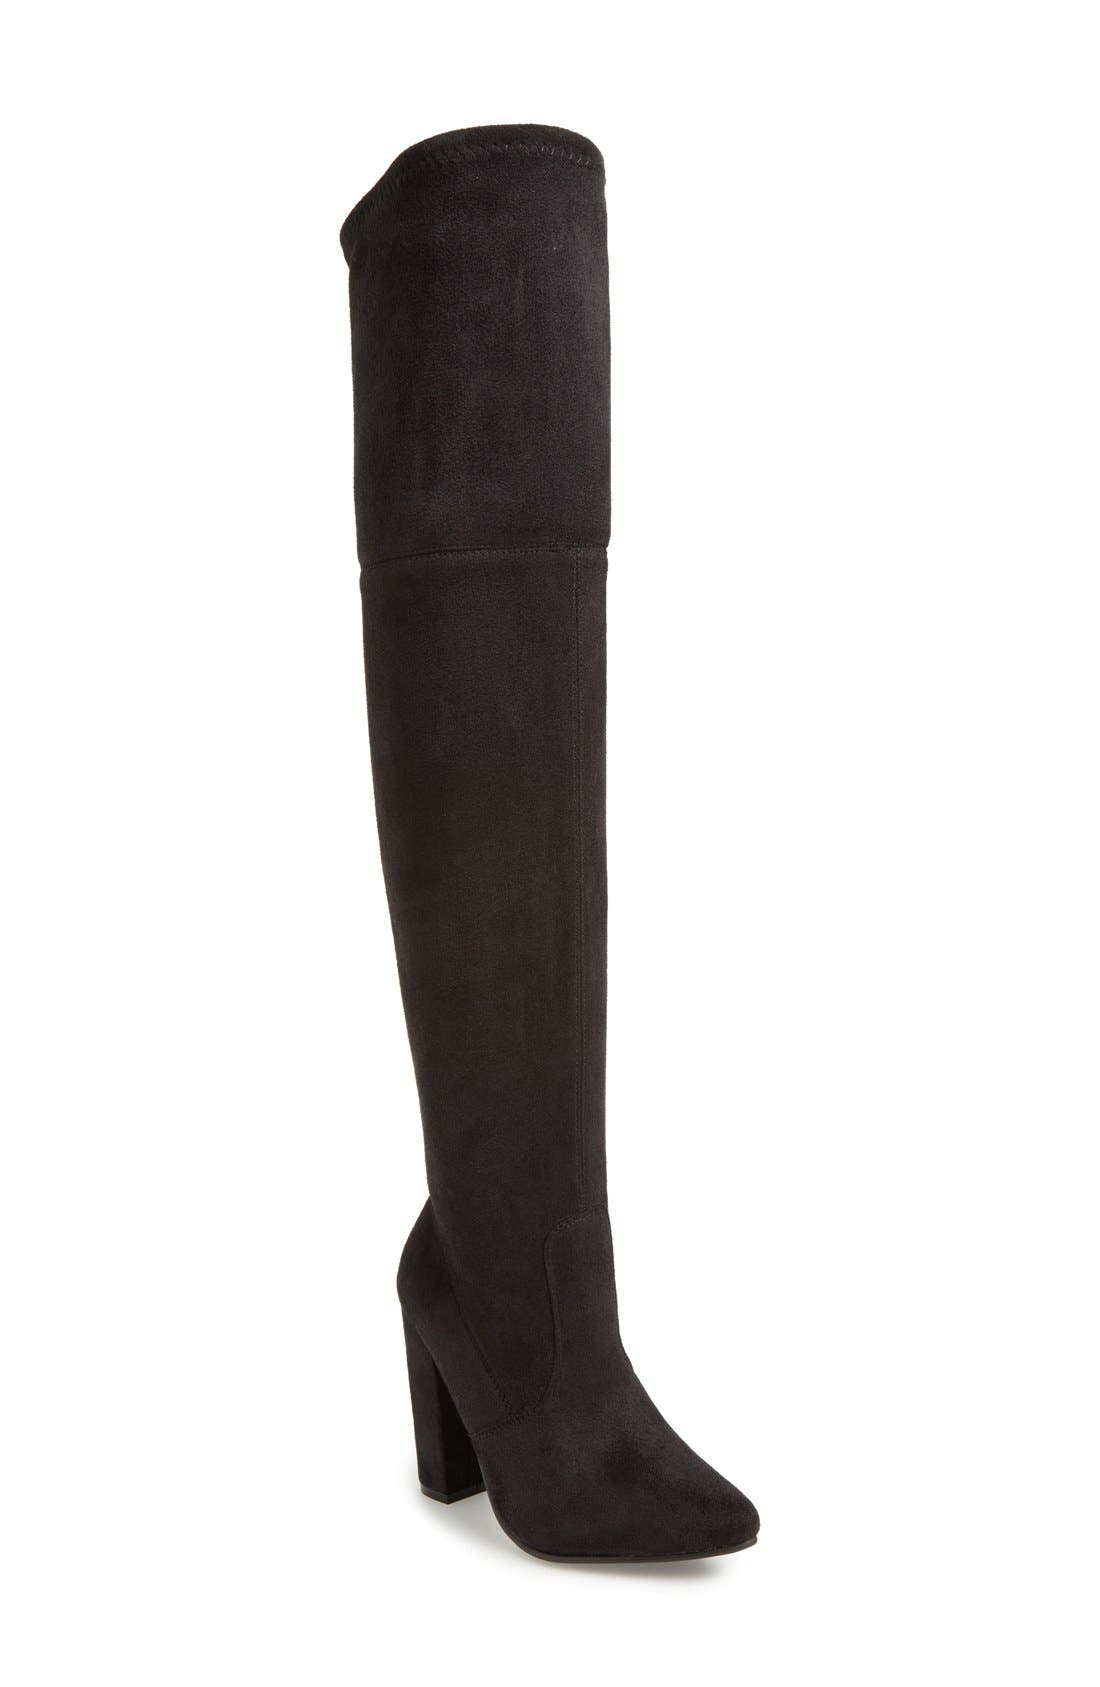 Main Image - Steve Madden 'Rocking' Over the Knee Boot (Women)